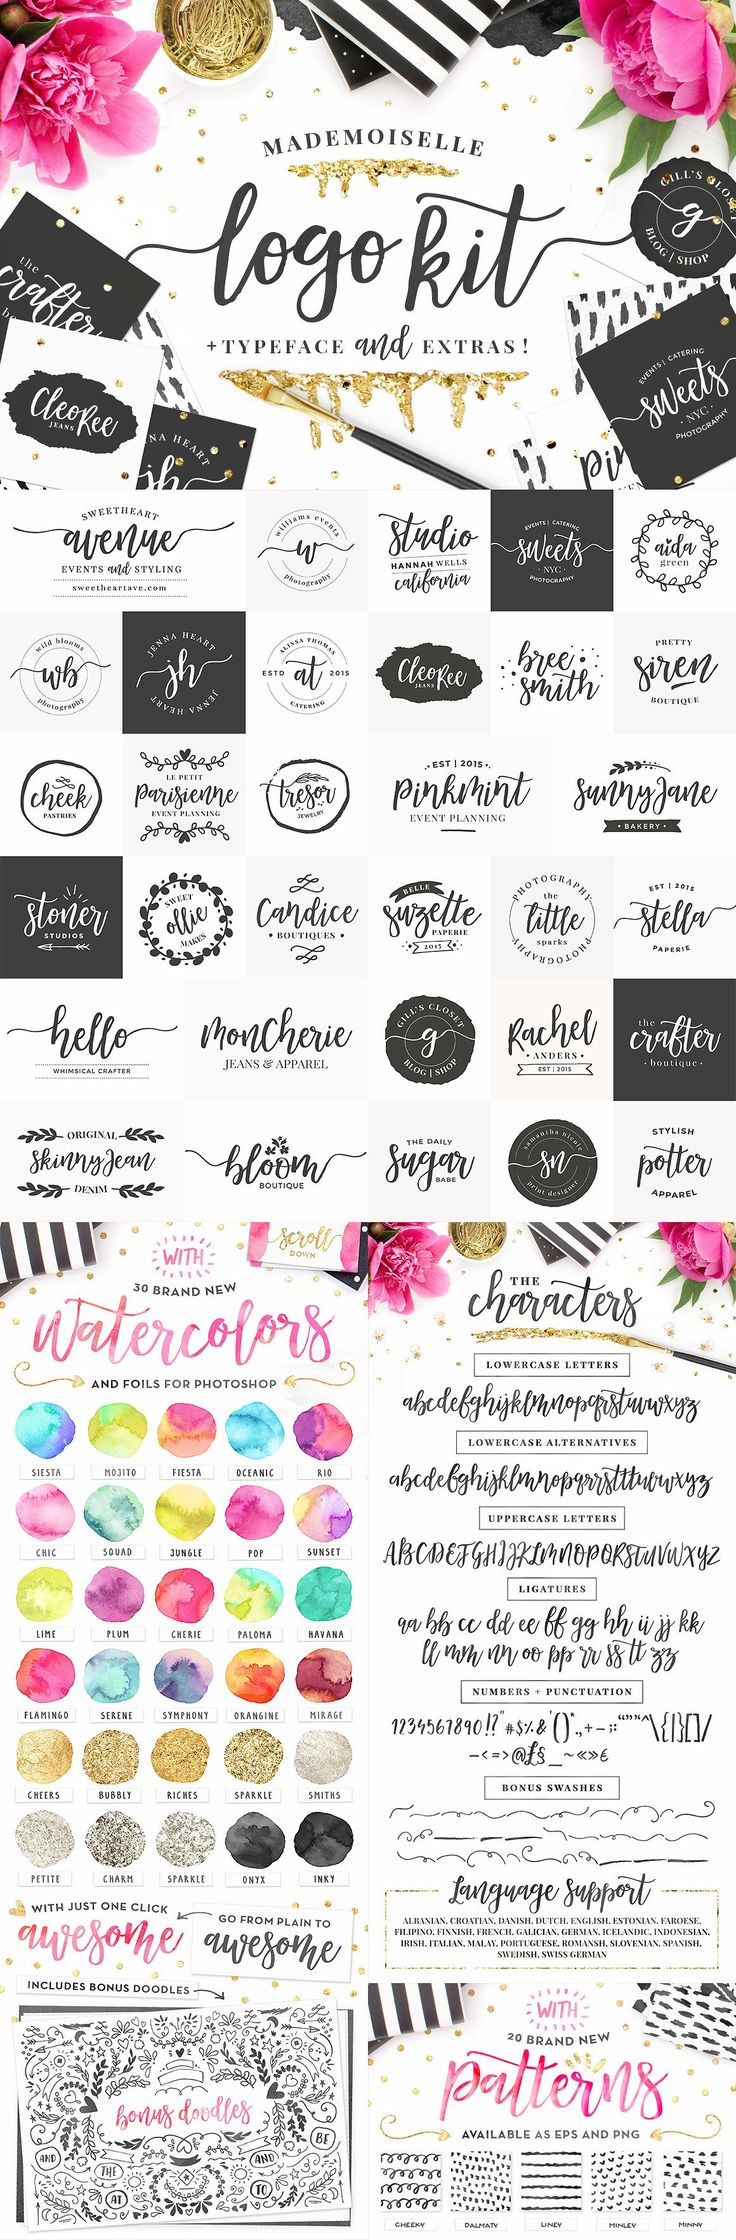 Mademoiselle + LOGO KIT & Extras! by Pink Coffie on @creativemarket